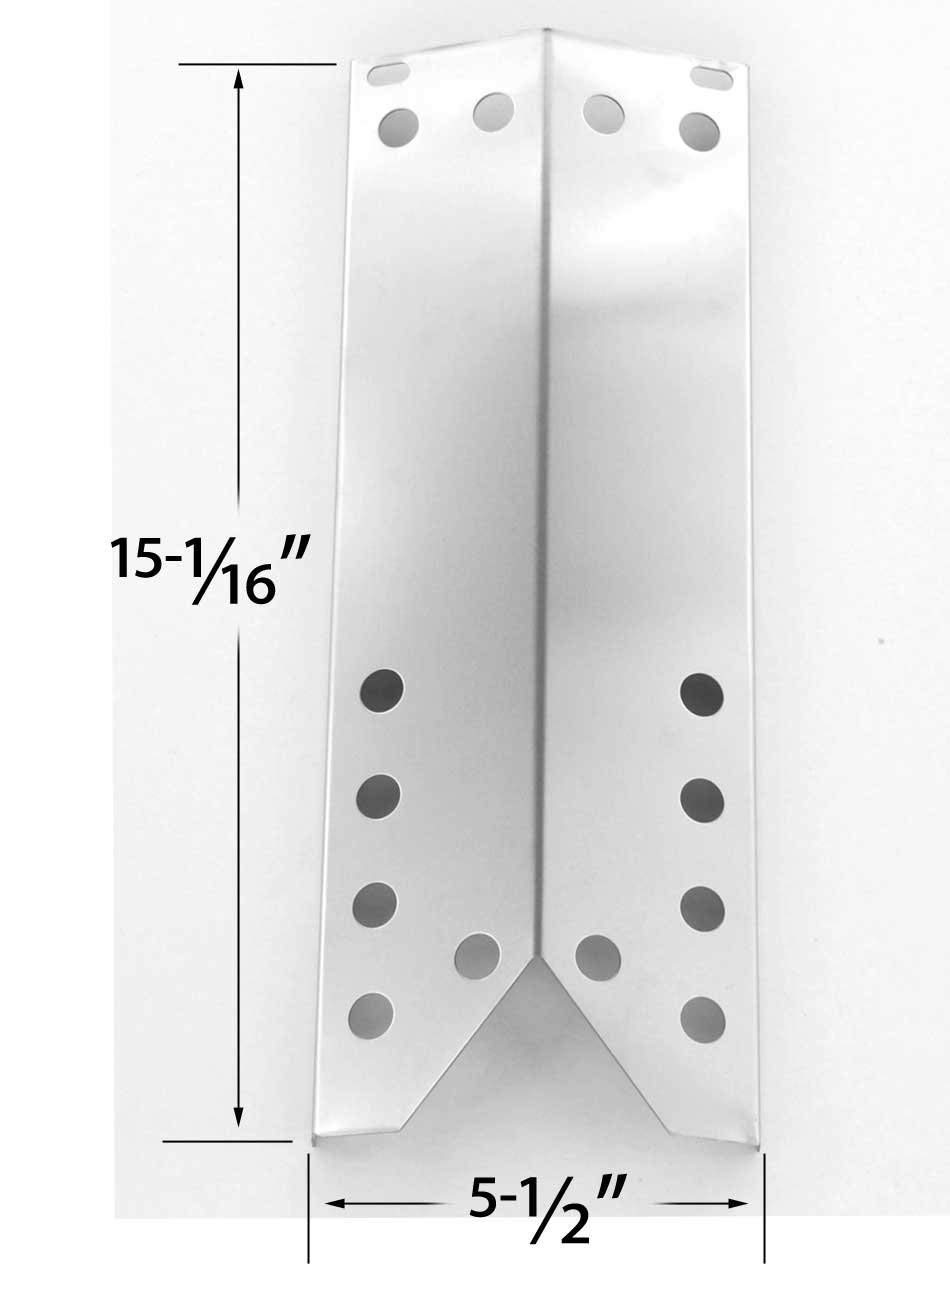 Stainless Steel Heat Shield for Kenmore 122.16431010, 122.16538900, 122.16539900, 122.16641900, 16539, 16641, 640-26629611-0, 640-82960811 and Grill Master 720-0670E Gas Models